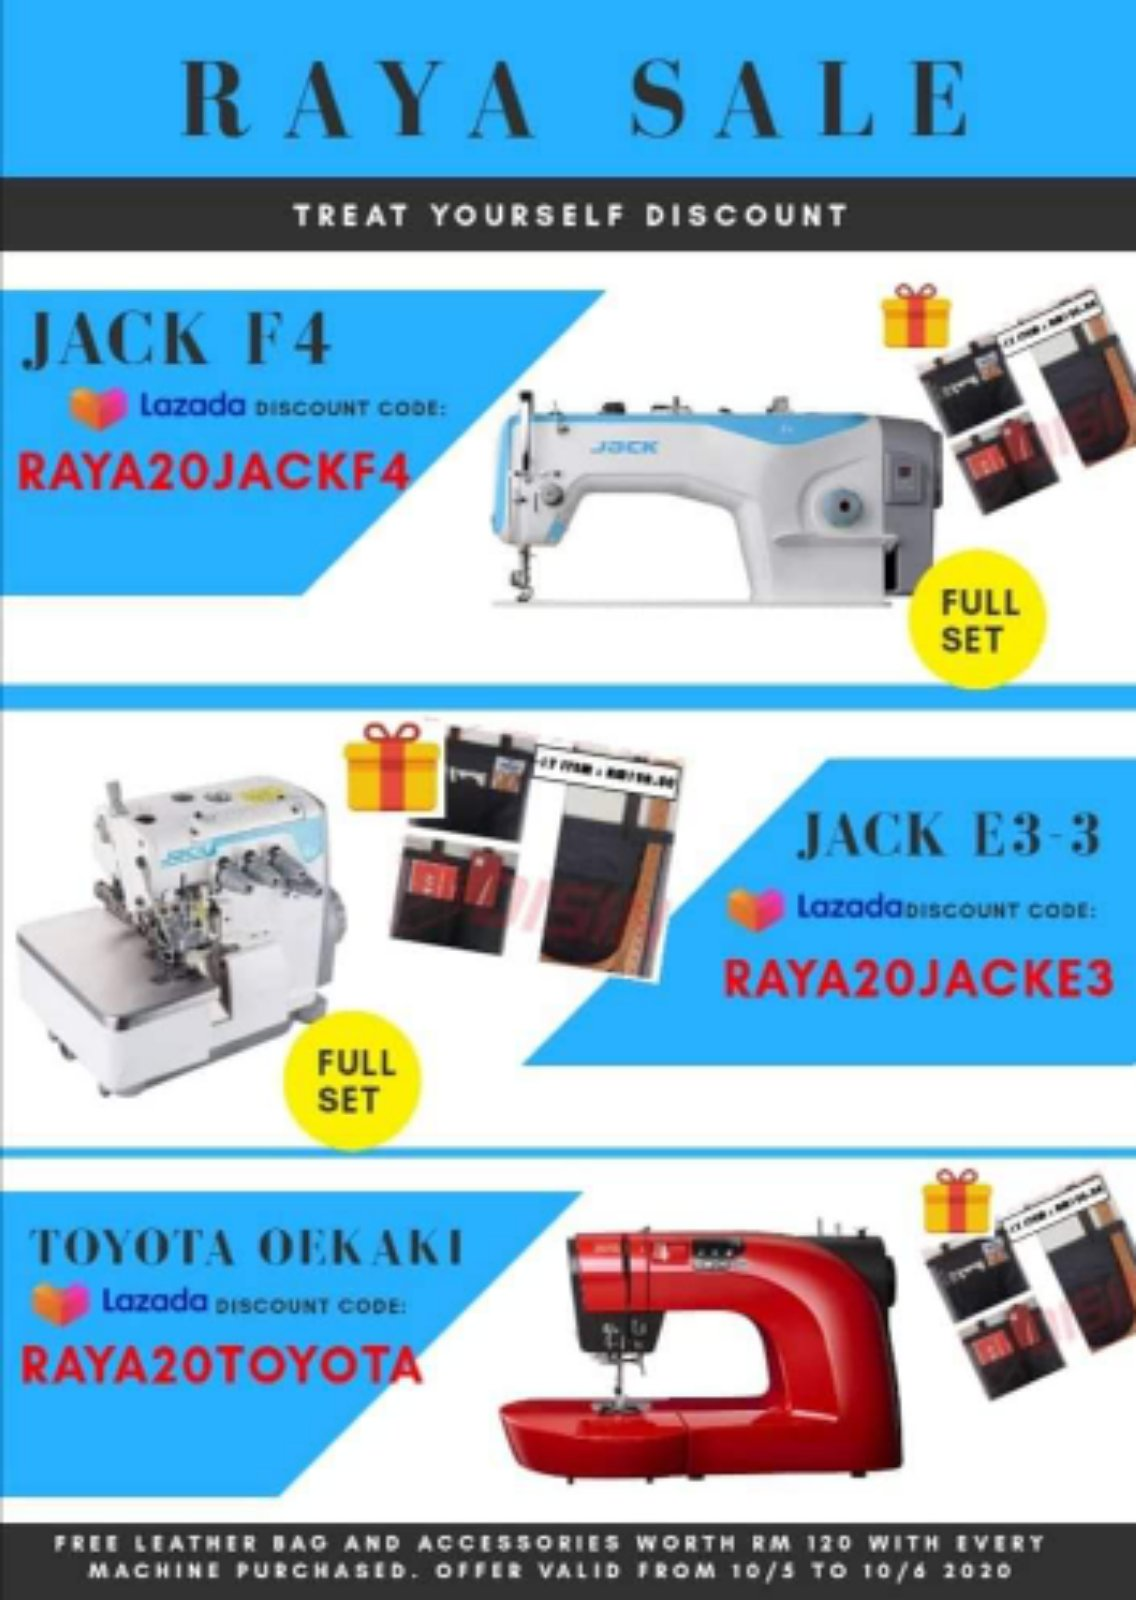 Promosi From Jack Sewing Machine